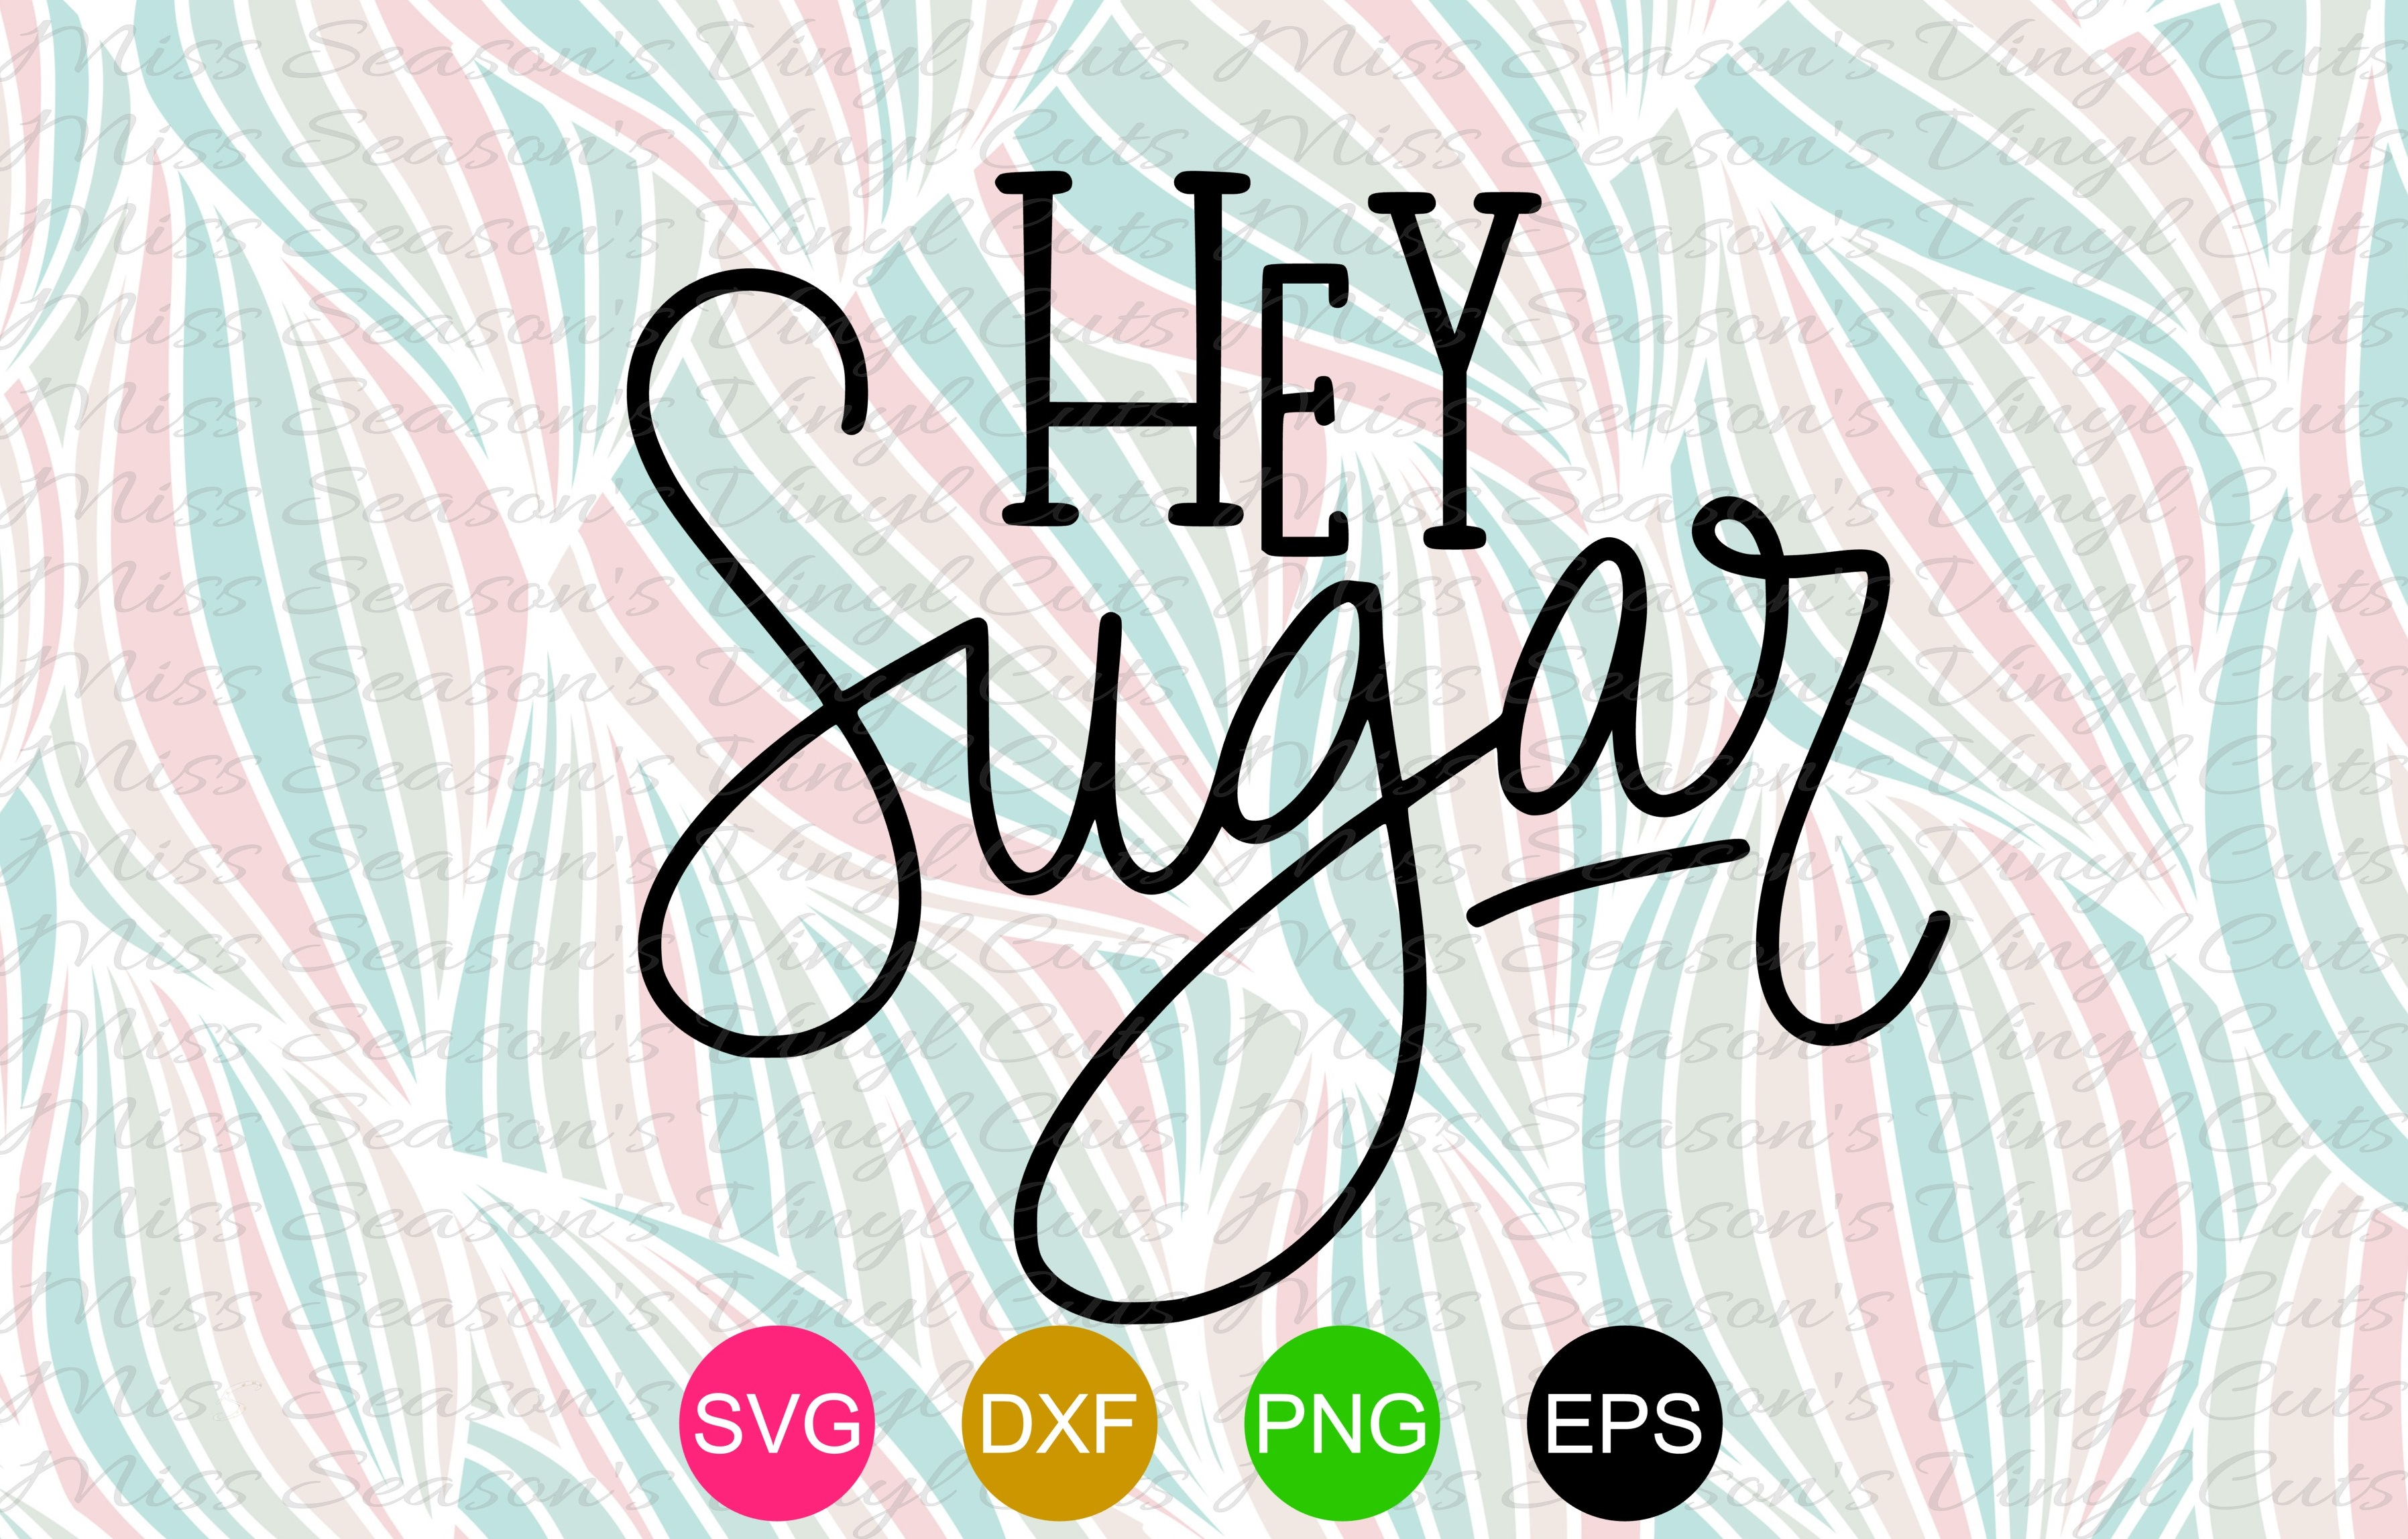 Download Free Hey Sugar Hand Lettered Graphic By Missseasonsvinylcuts for Cricut Explore, Silhouette and other cutting machines.